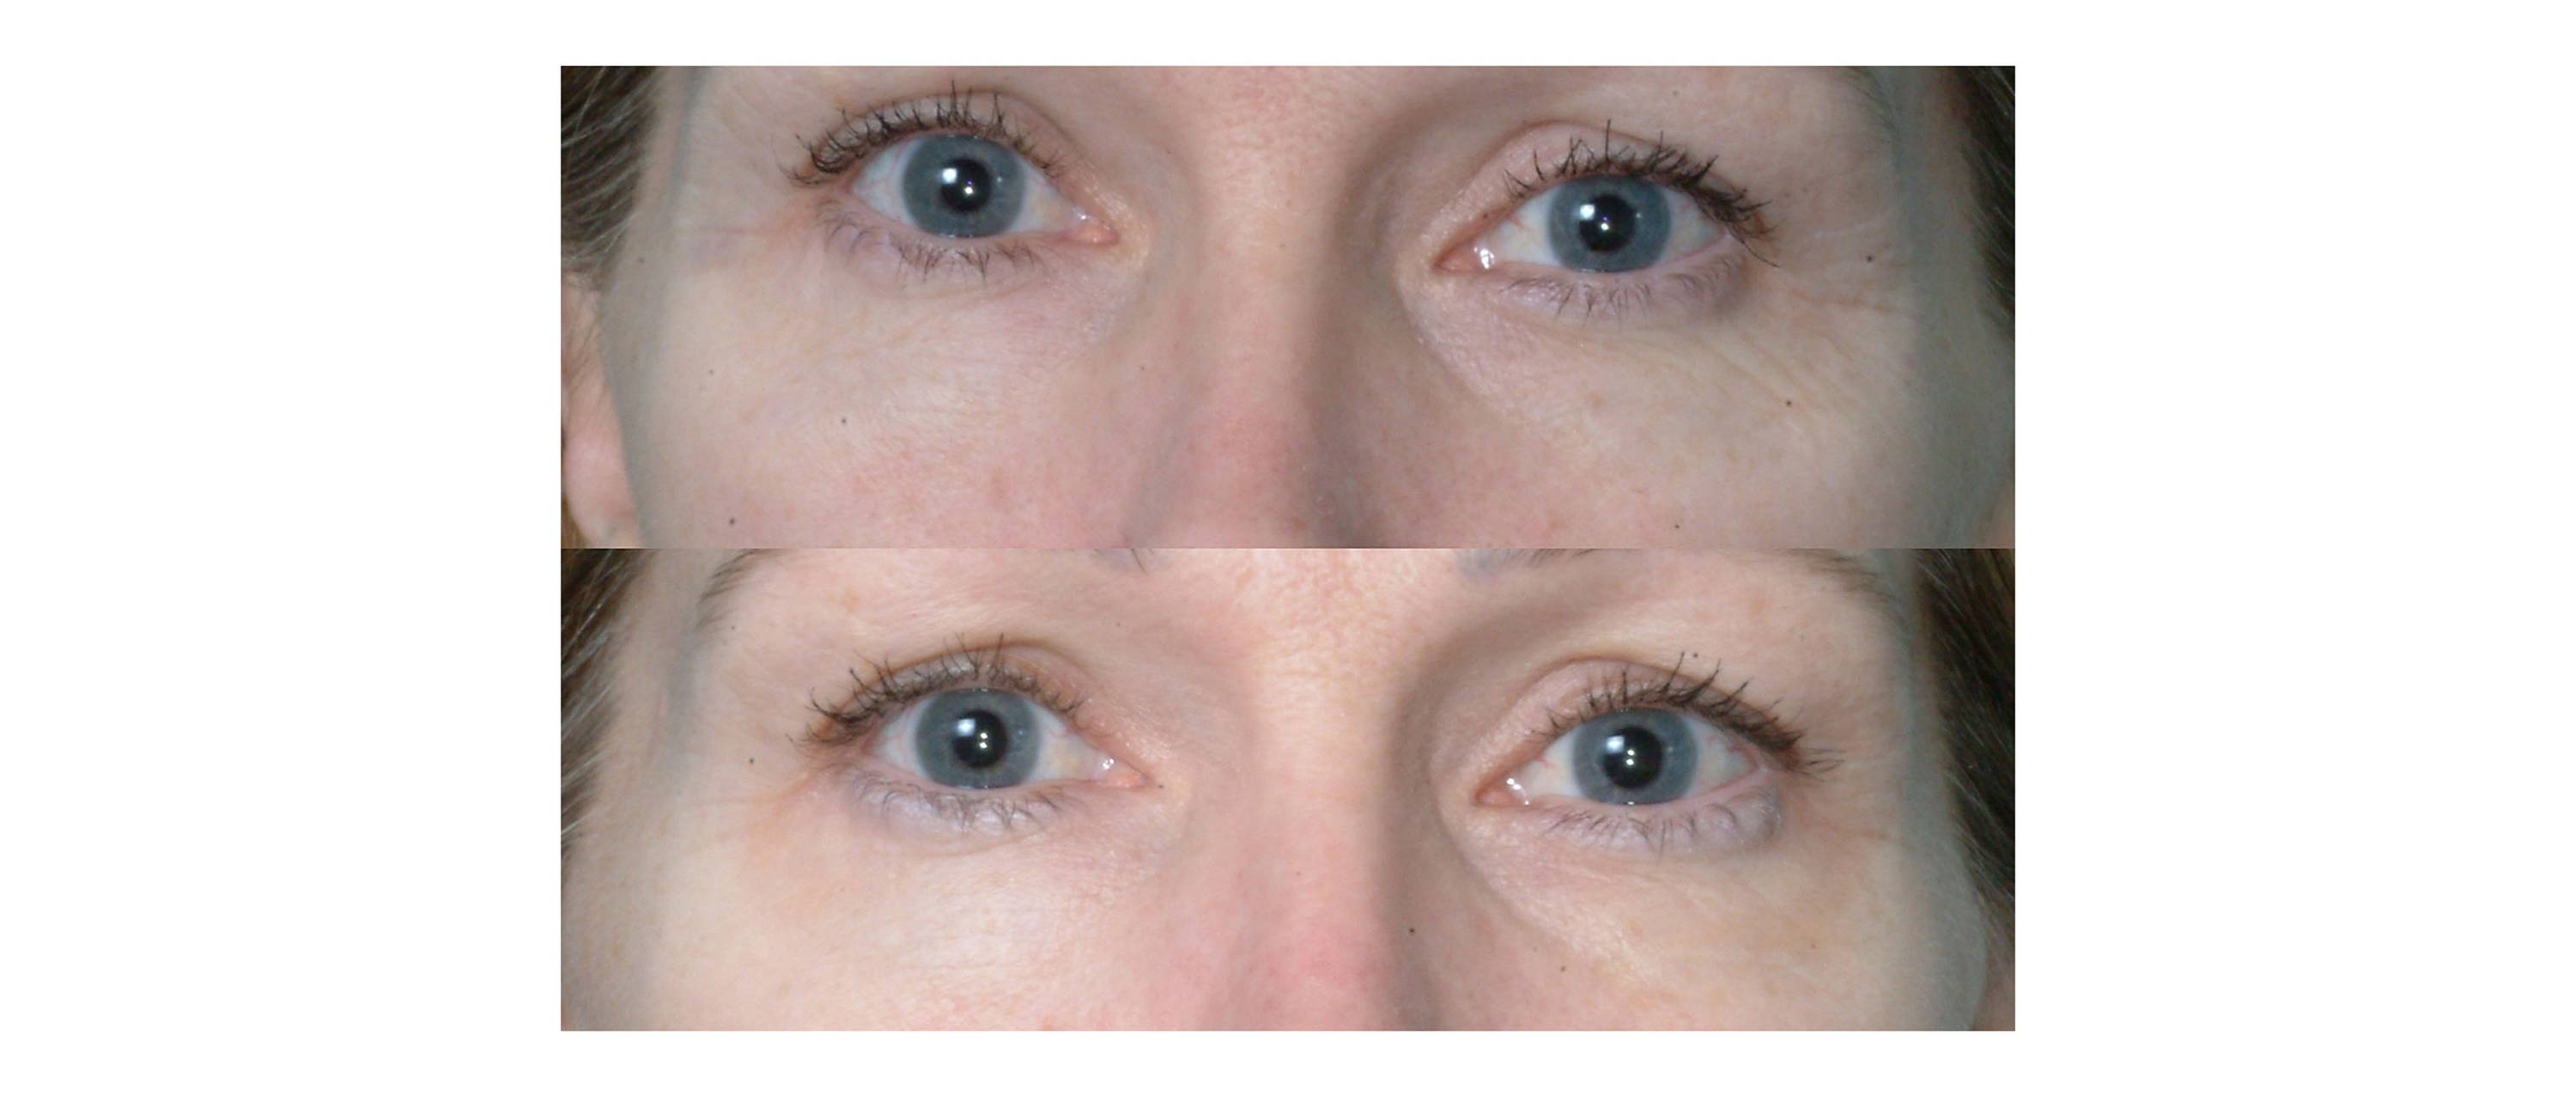 woman results with less wrinkles and dark circles after using deppatch